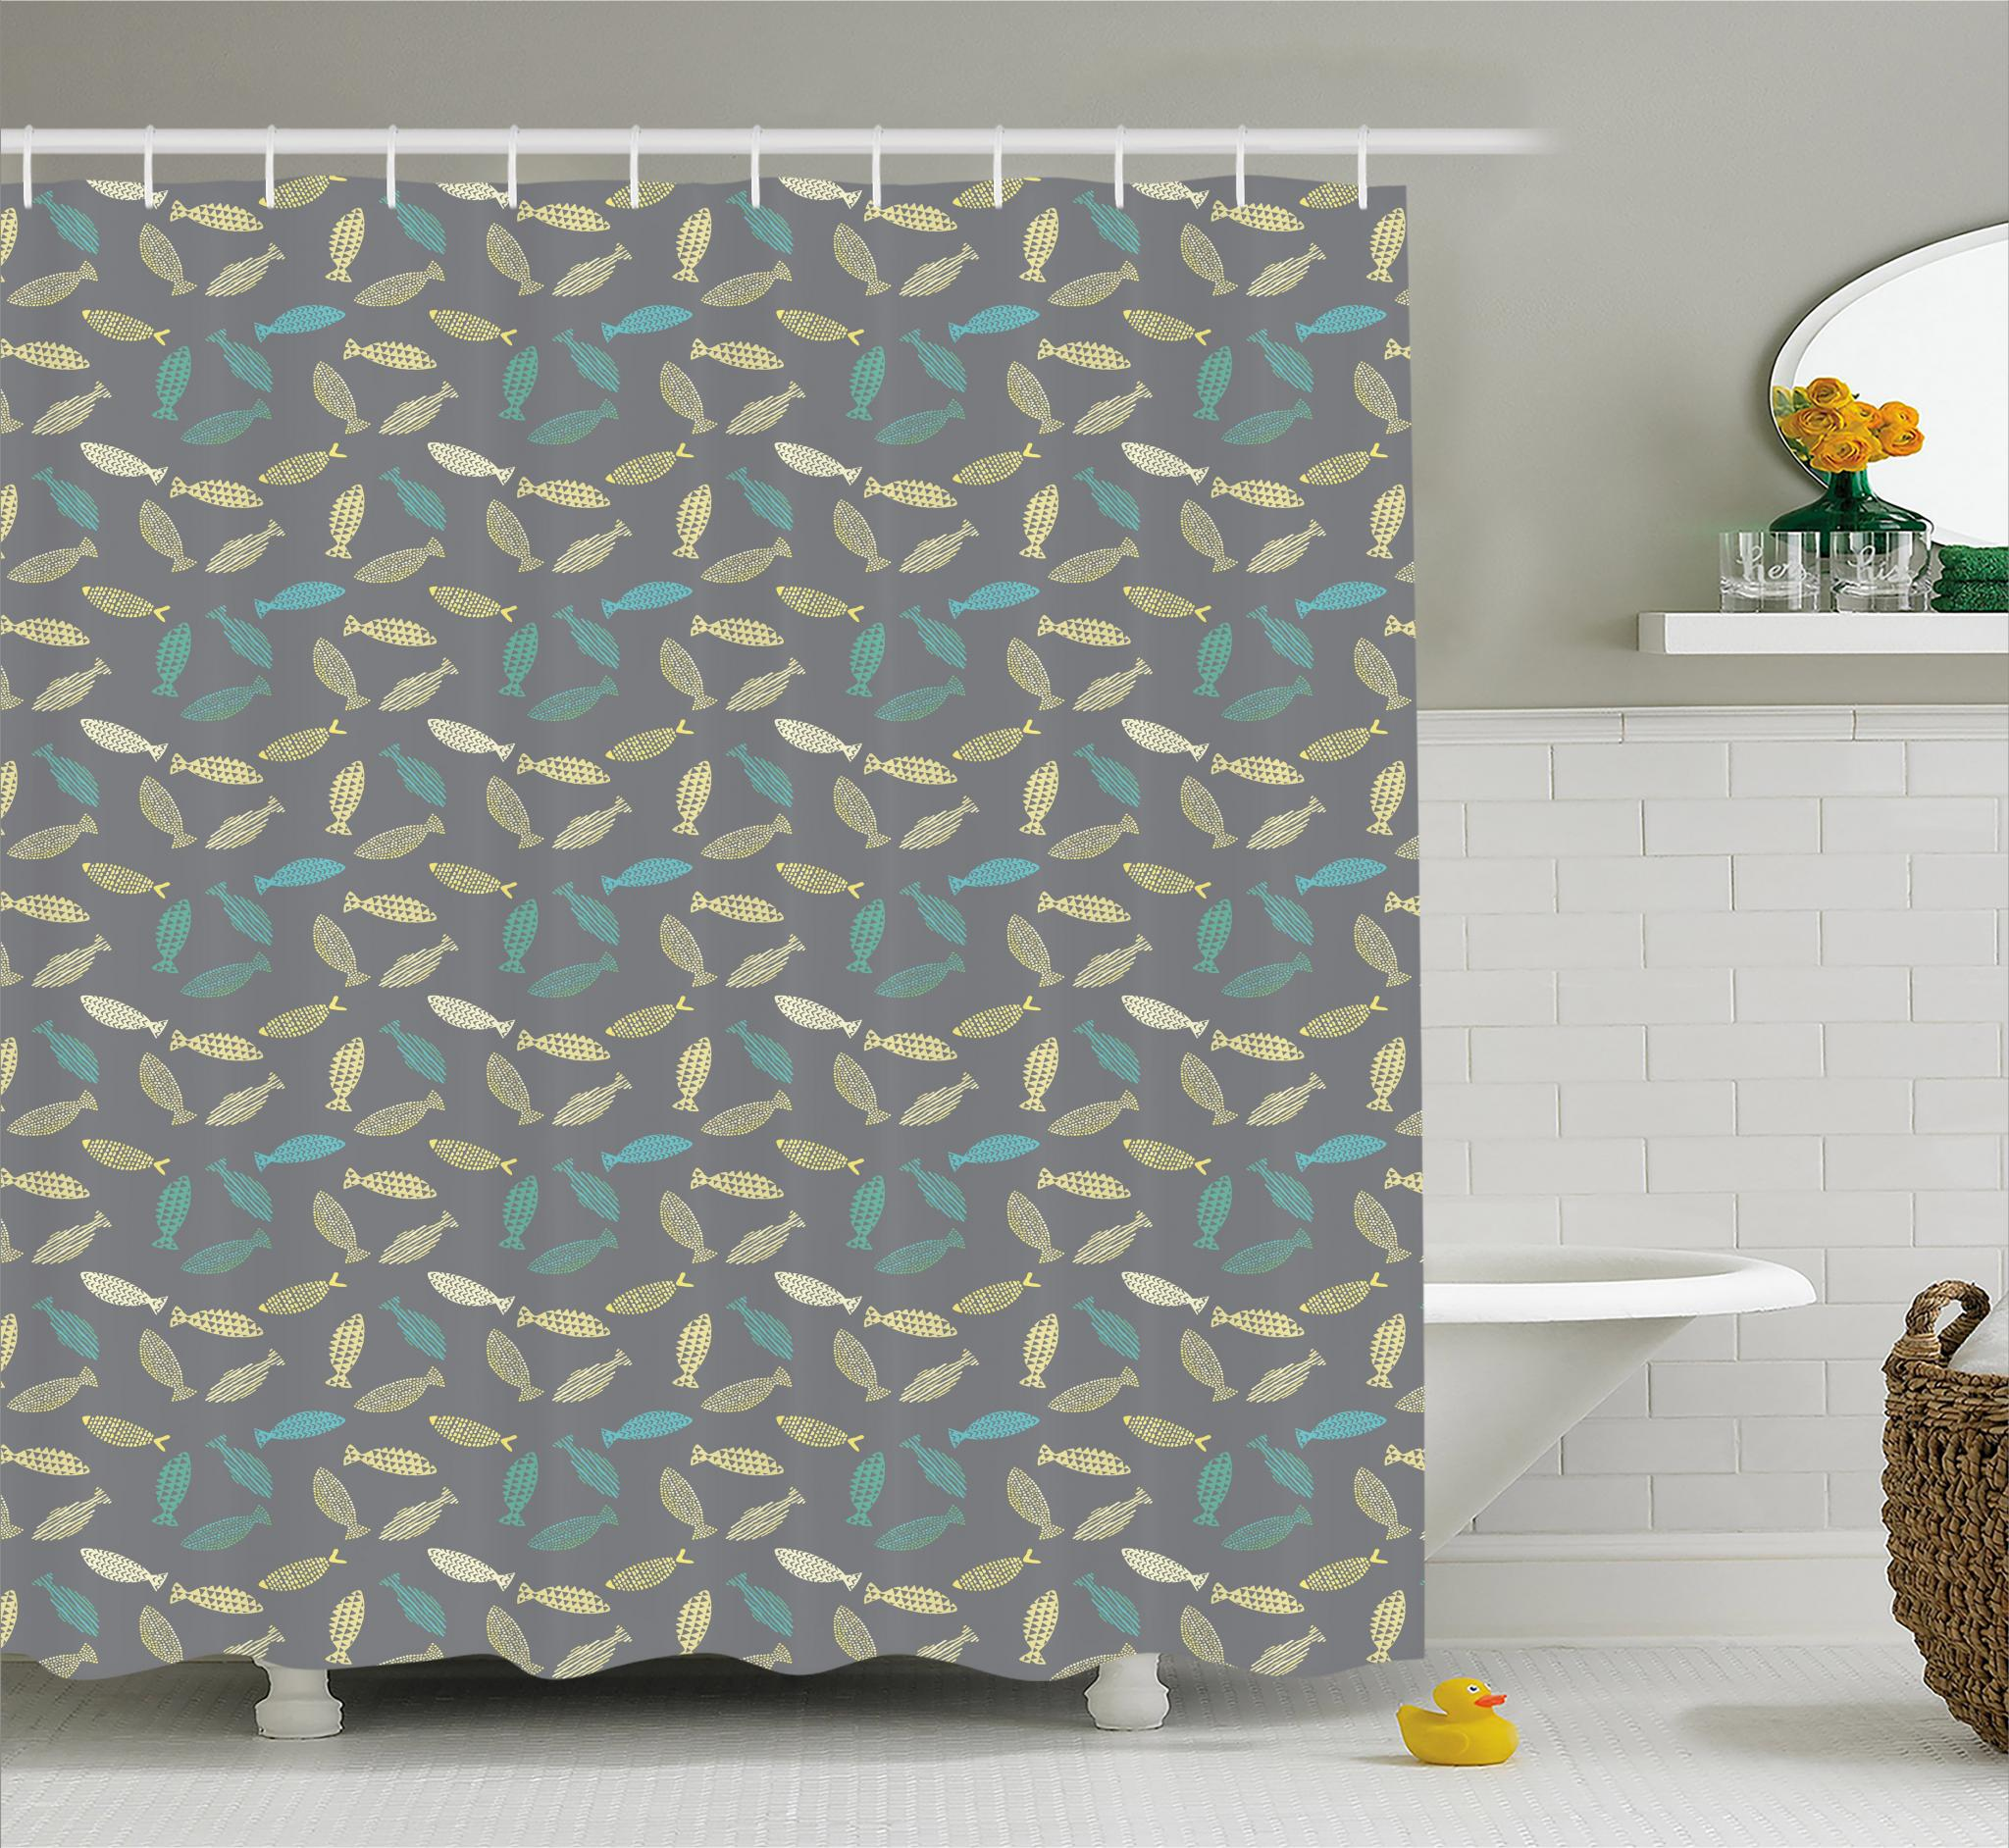 Fish Shower Curtain Abstract Fish Figures Ornamented With Dots Stripes And Triangles On Grey Backdrop Fabric Bathroom Set With Hooks 69w X 70l